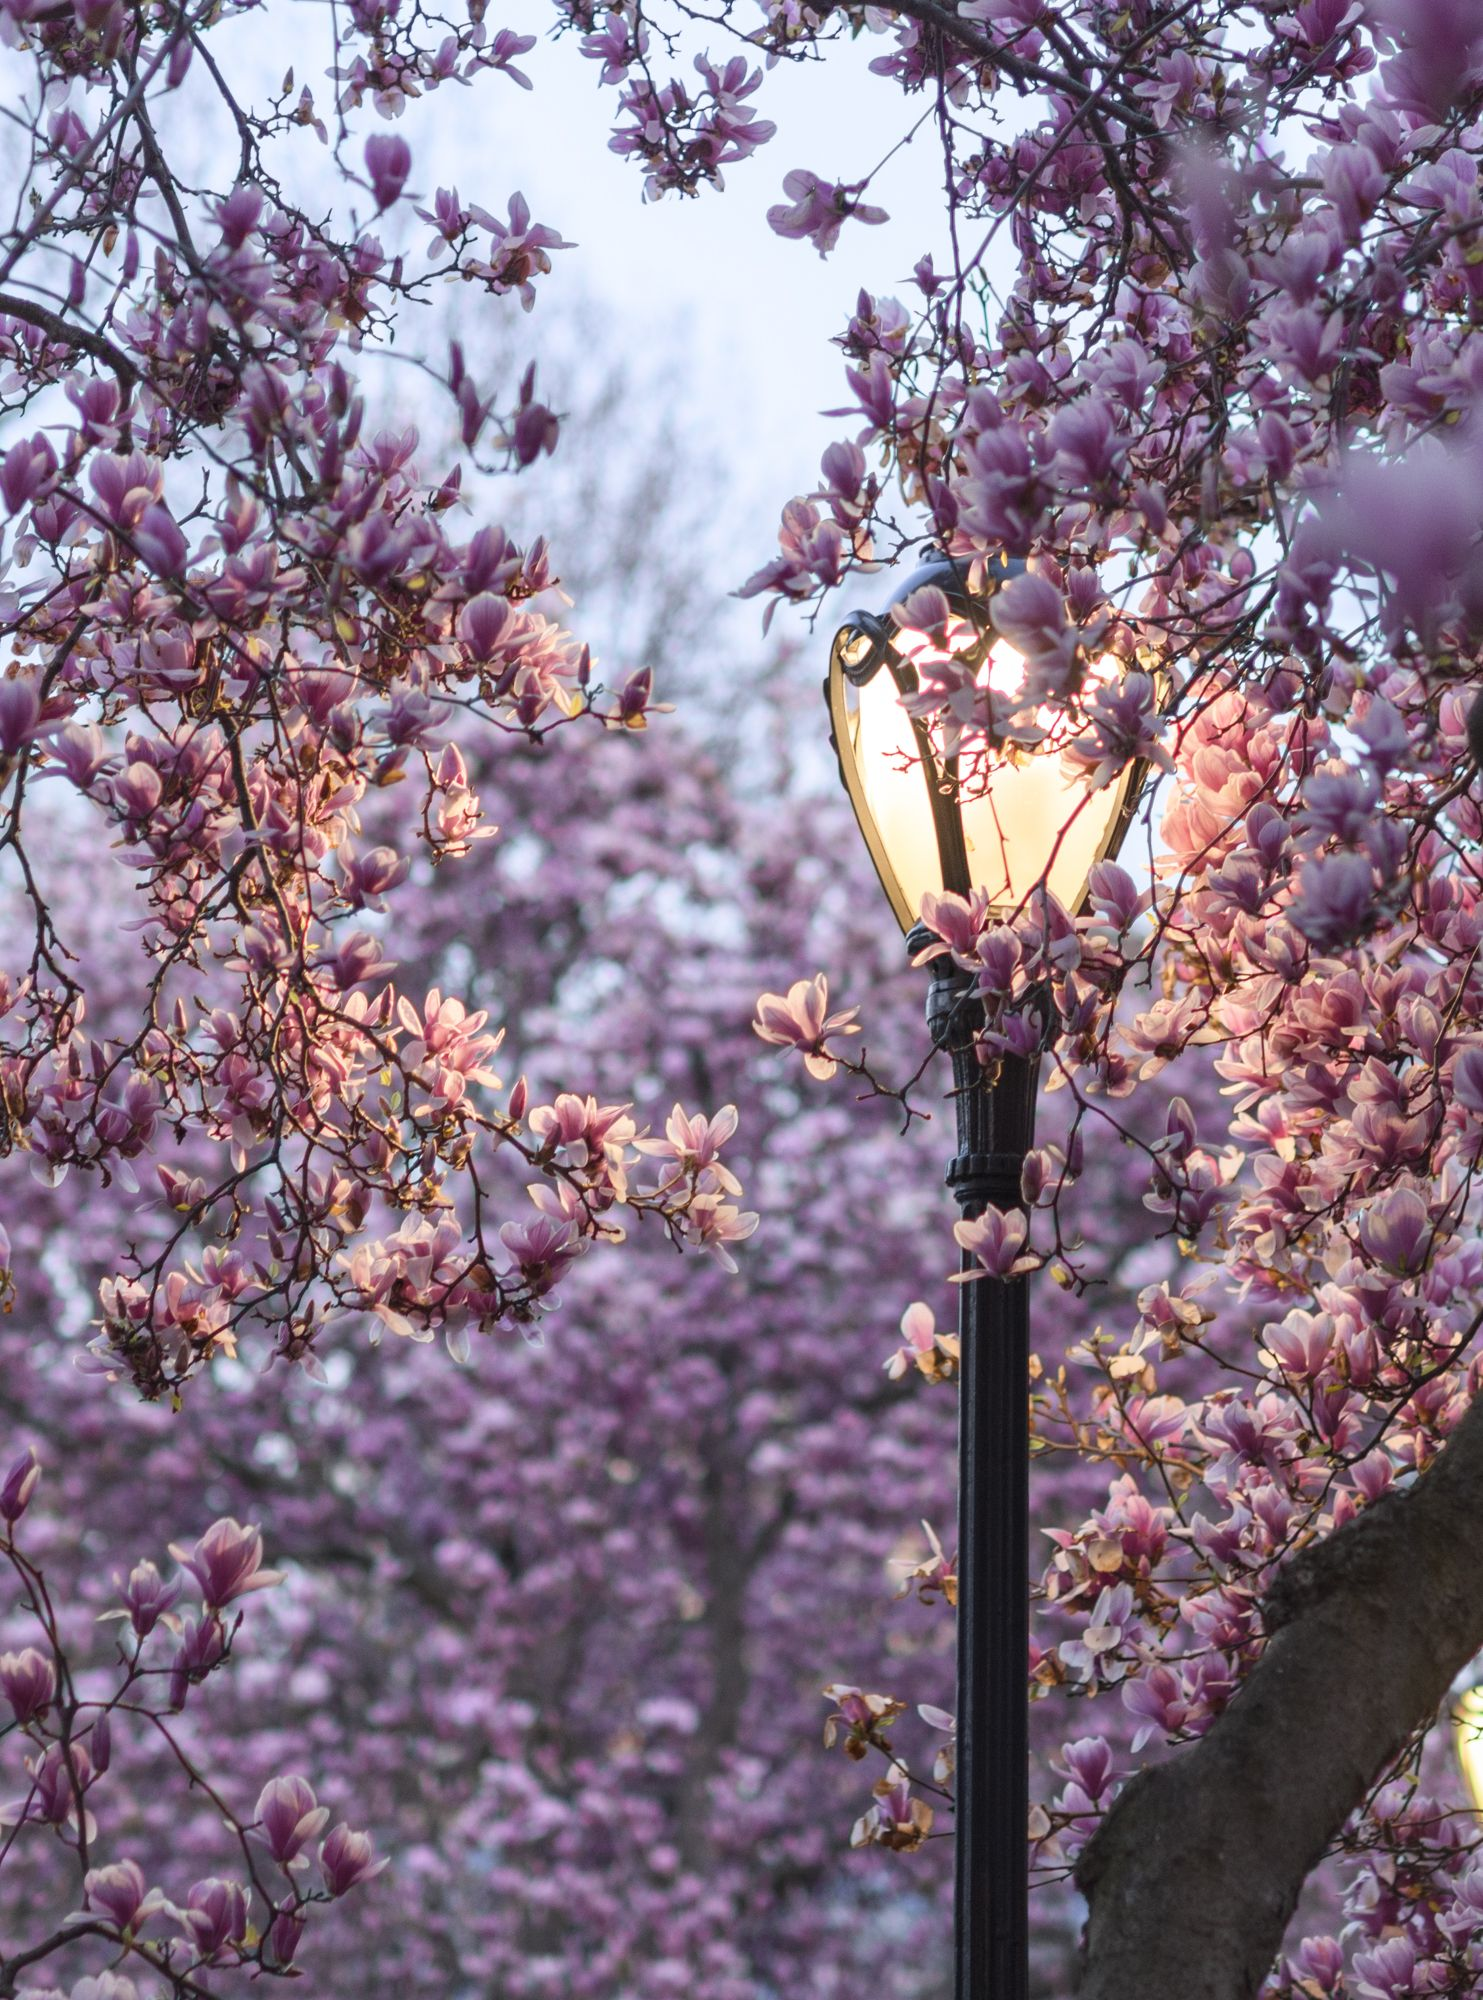 Central Park in spring by Lane, author and